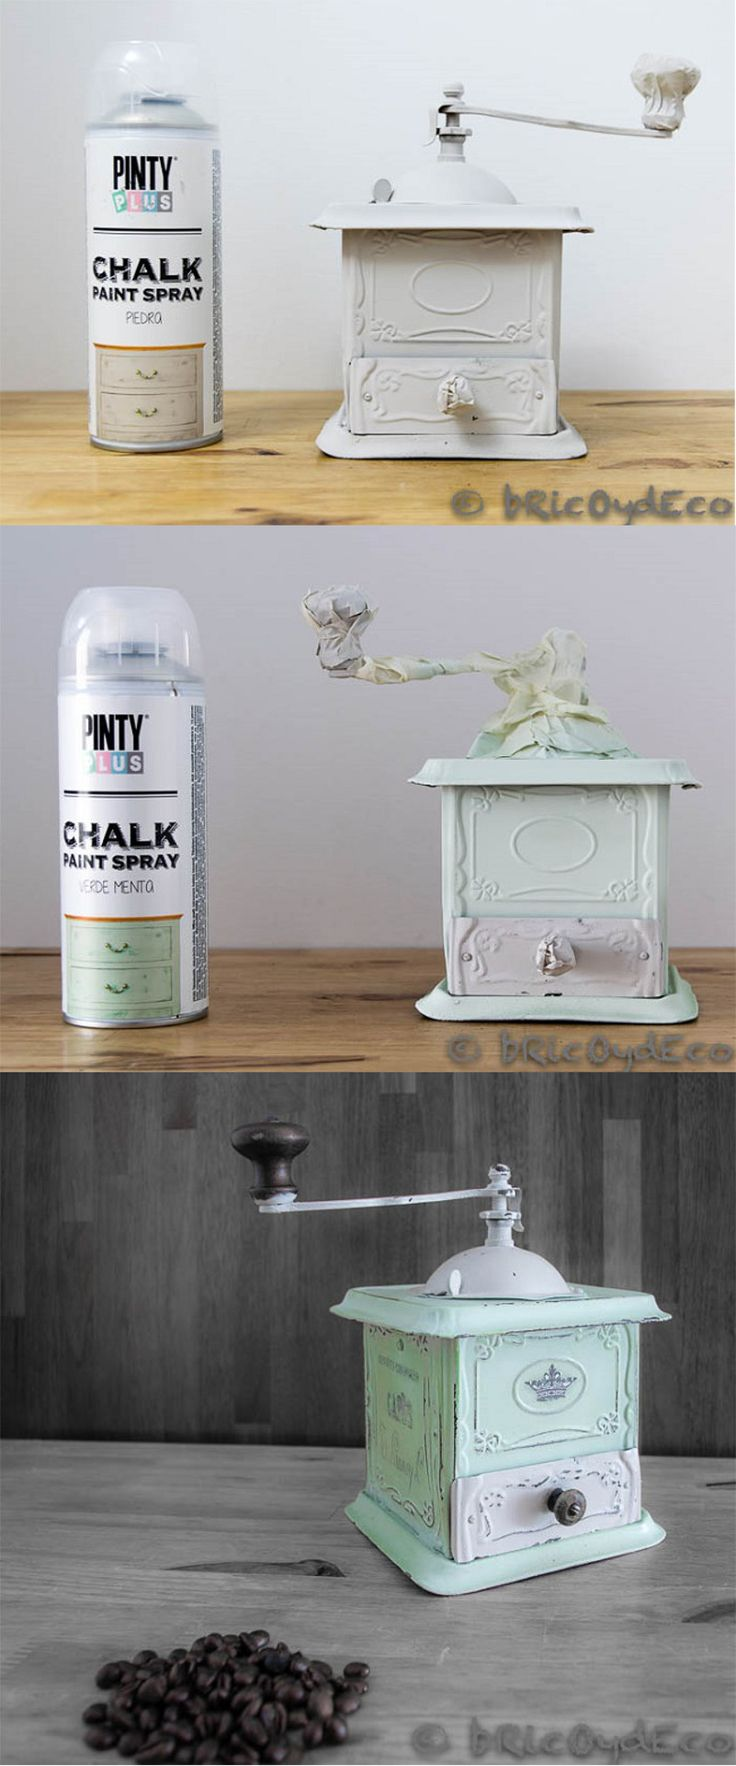 DIY of a coffe grinder with Pintyplus chalk spray paint. By @bricoydeco